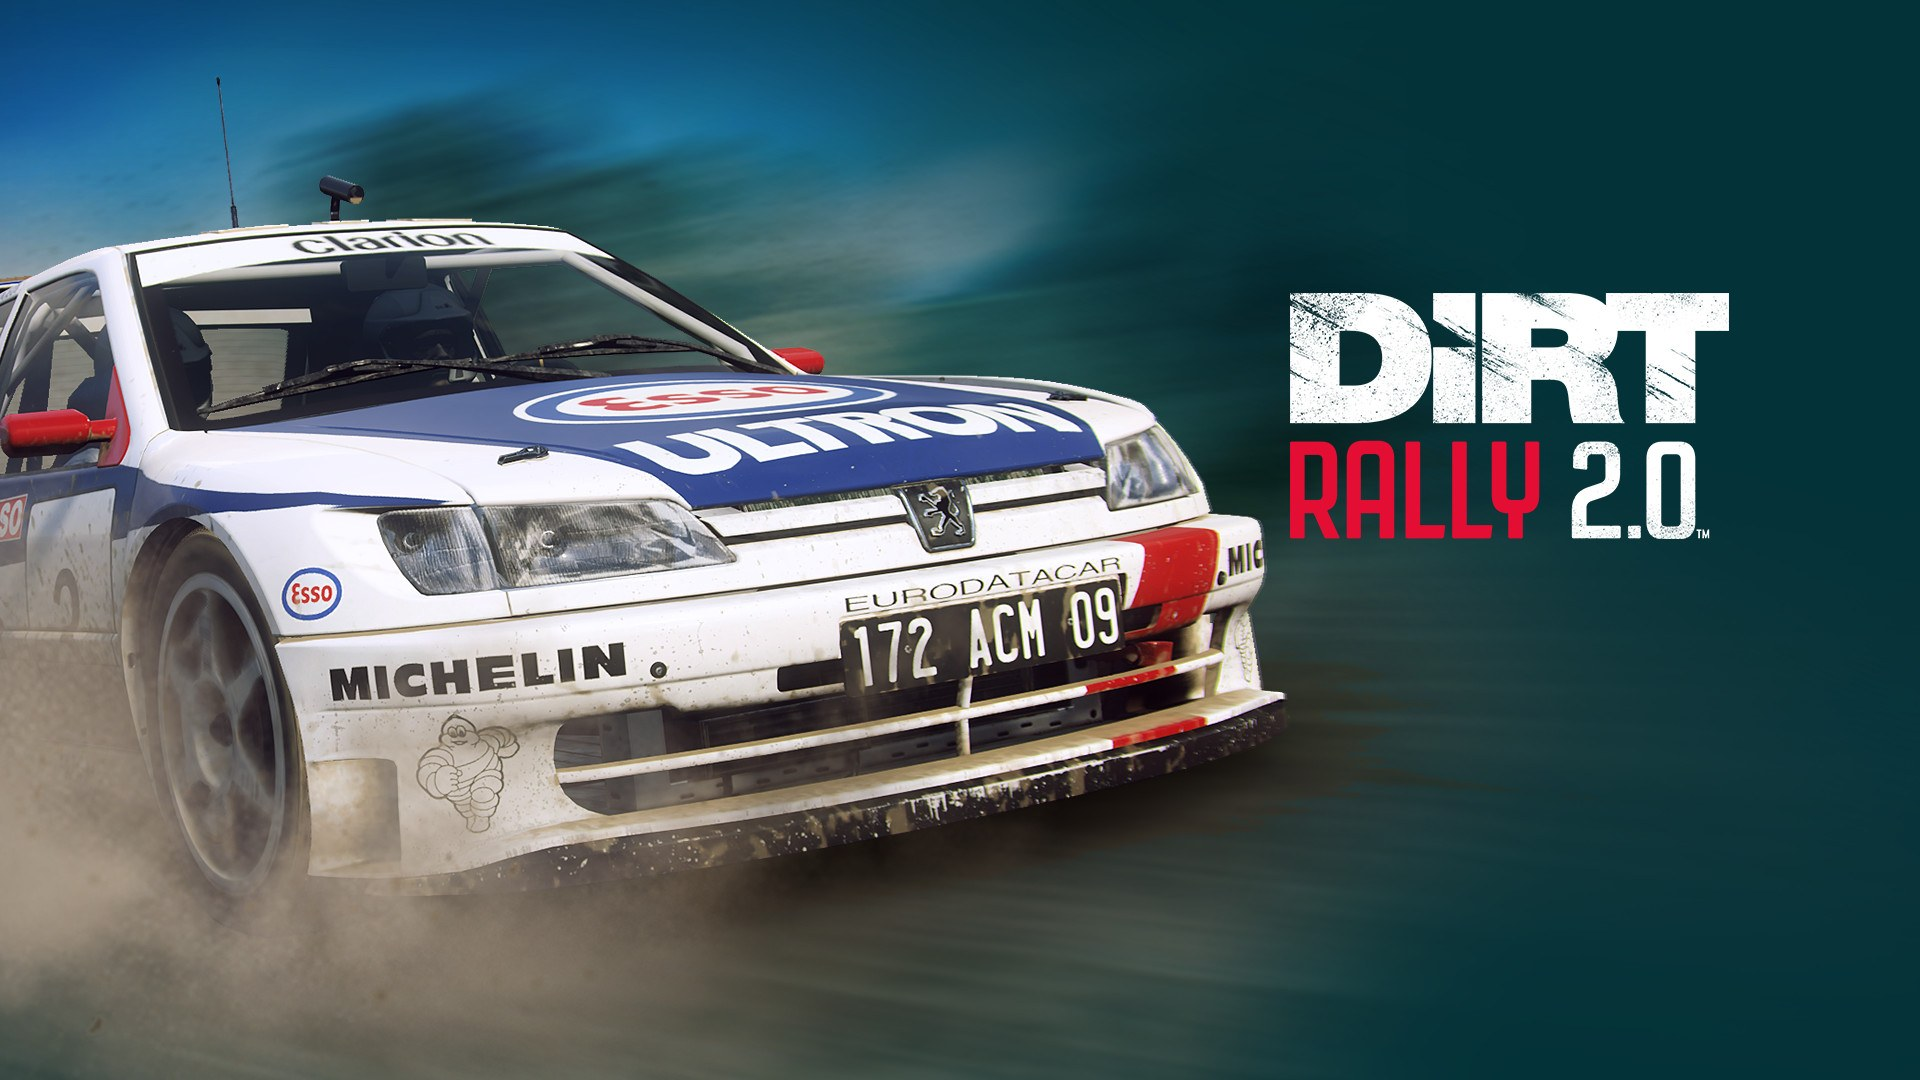 Download DiRT Rally 2.0 Colin McRae FLAT OUT-CODEX + Update v1.14.0-CODEX + CRACK ONLY